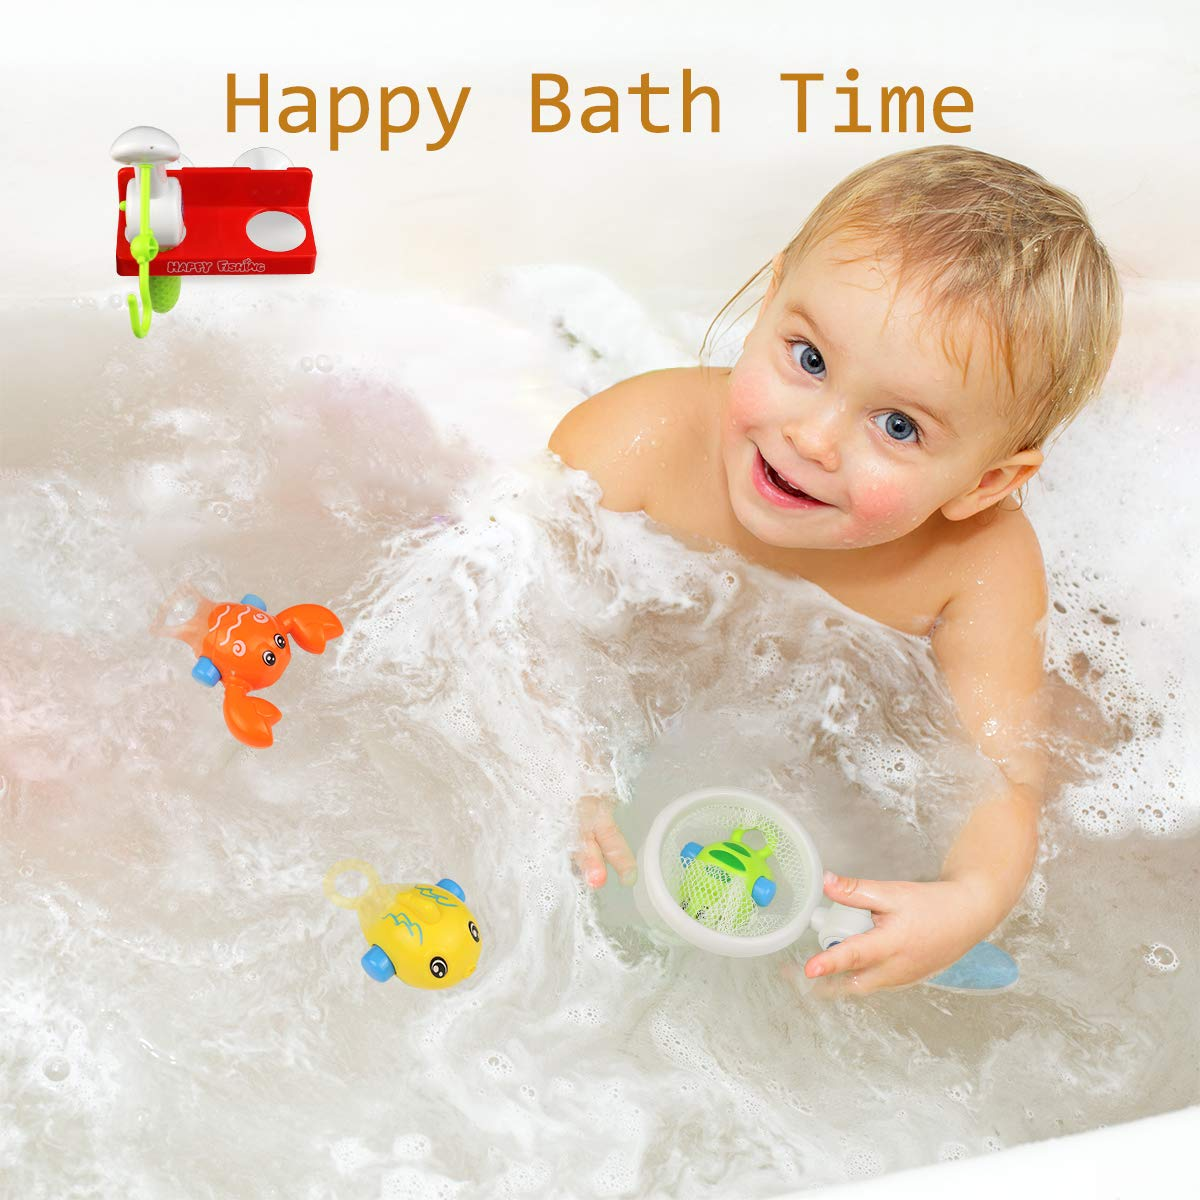 Toddlers and Children Early Educational Toys with ABC Letters and Facial Expression Enjoy Water and Beach Playing time 5-Pack HAOXIN Bath Toys Nesting /& Stacking Cups for Kids